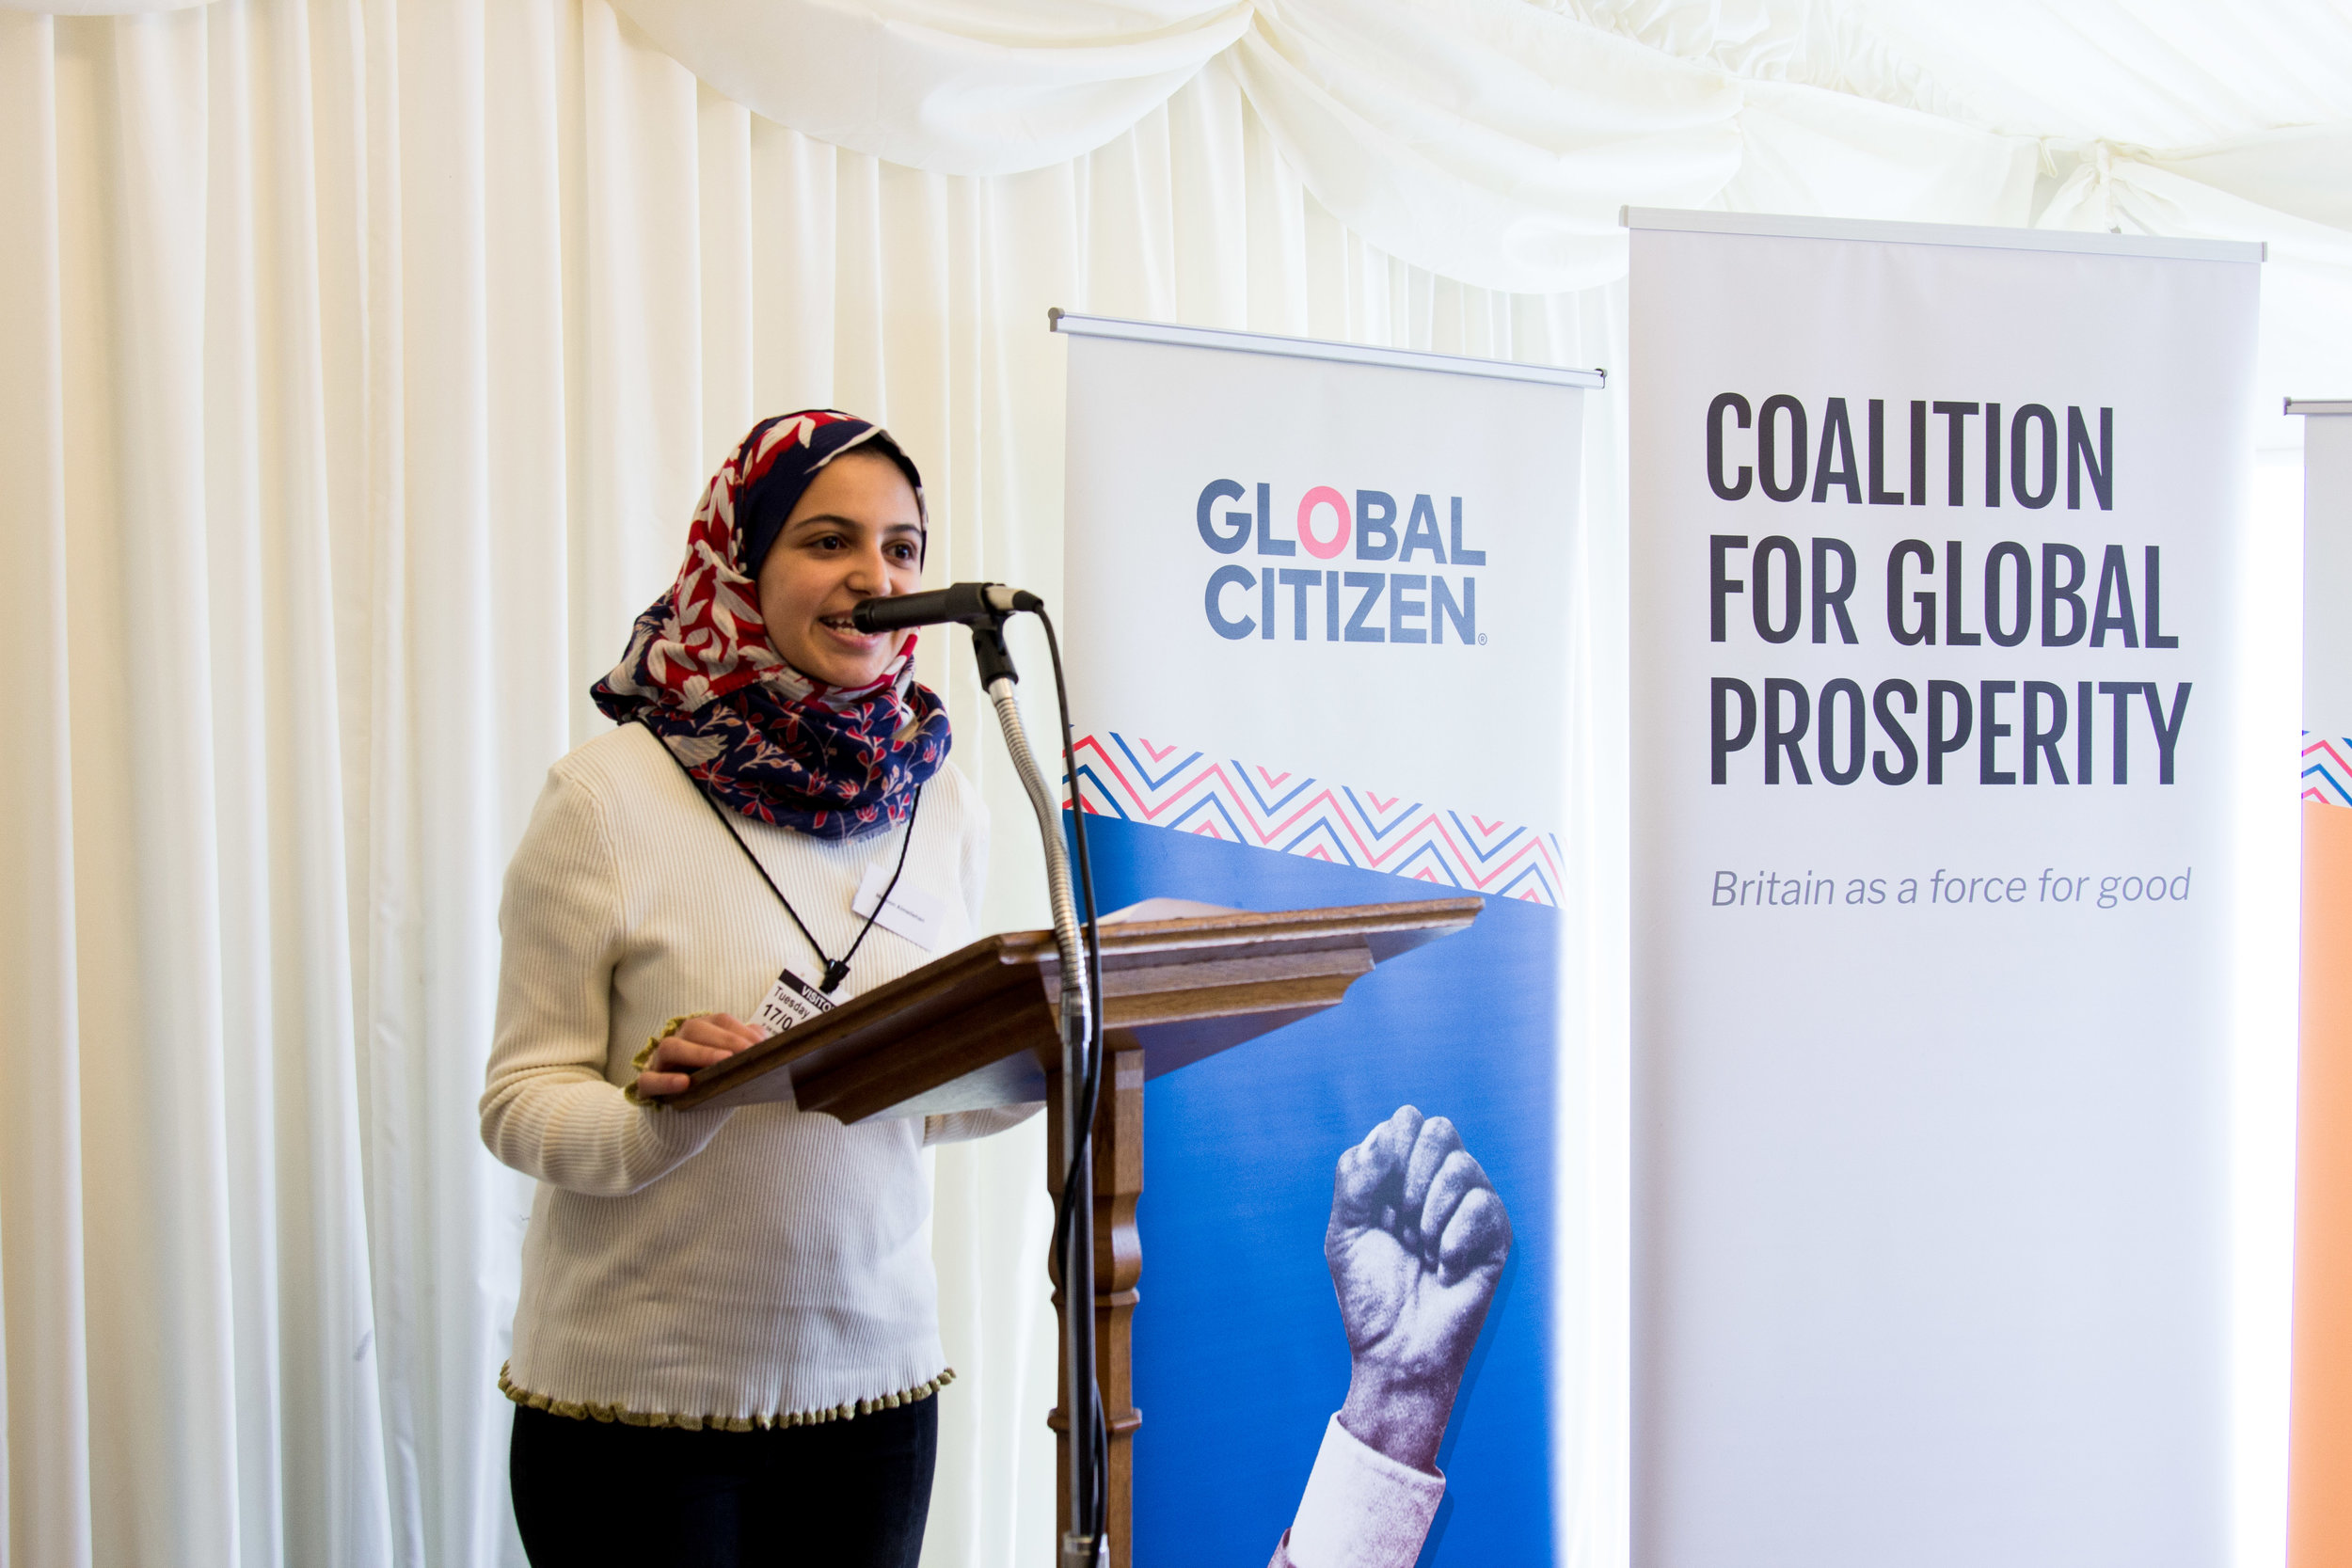 UNICEF Goodwill Ambassador and Education Campaigner    Muzoon Almellehan    speaking at the event